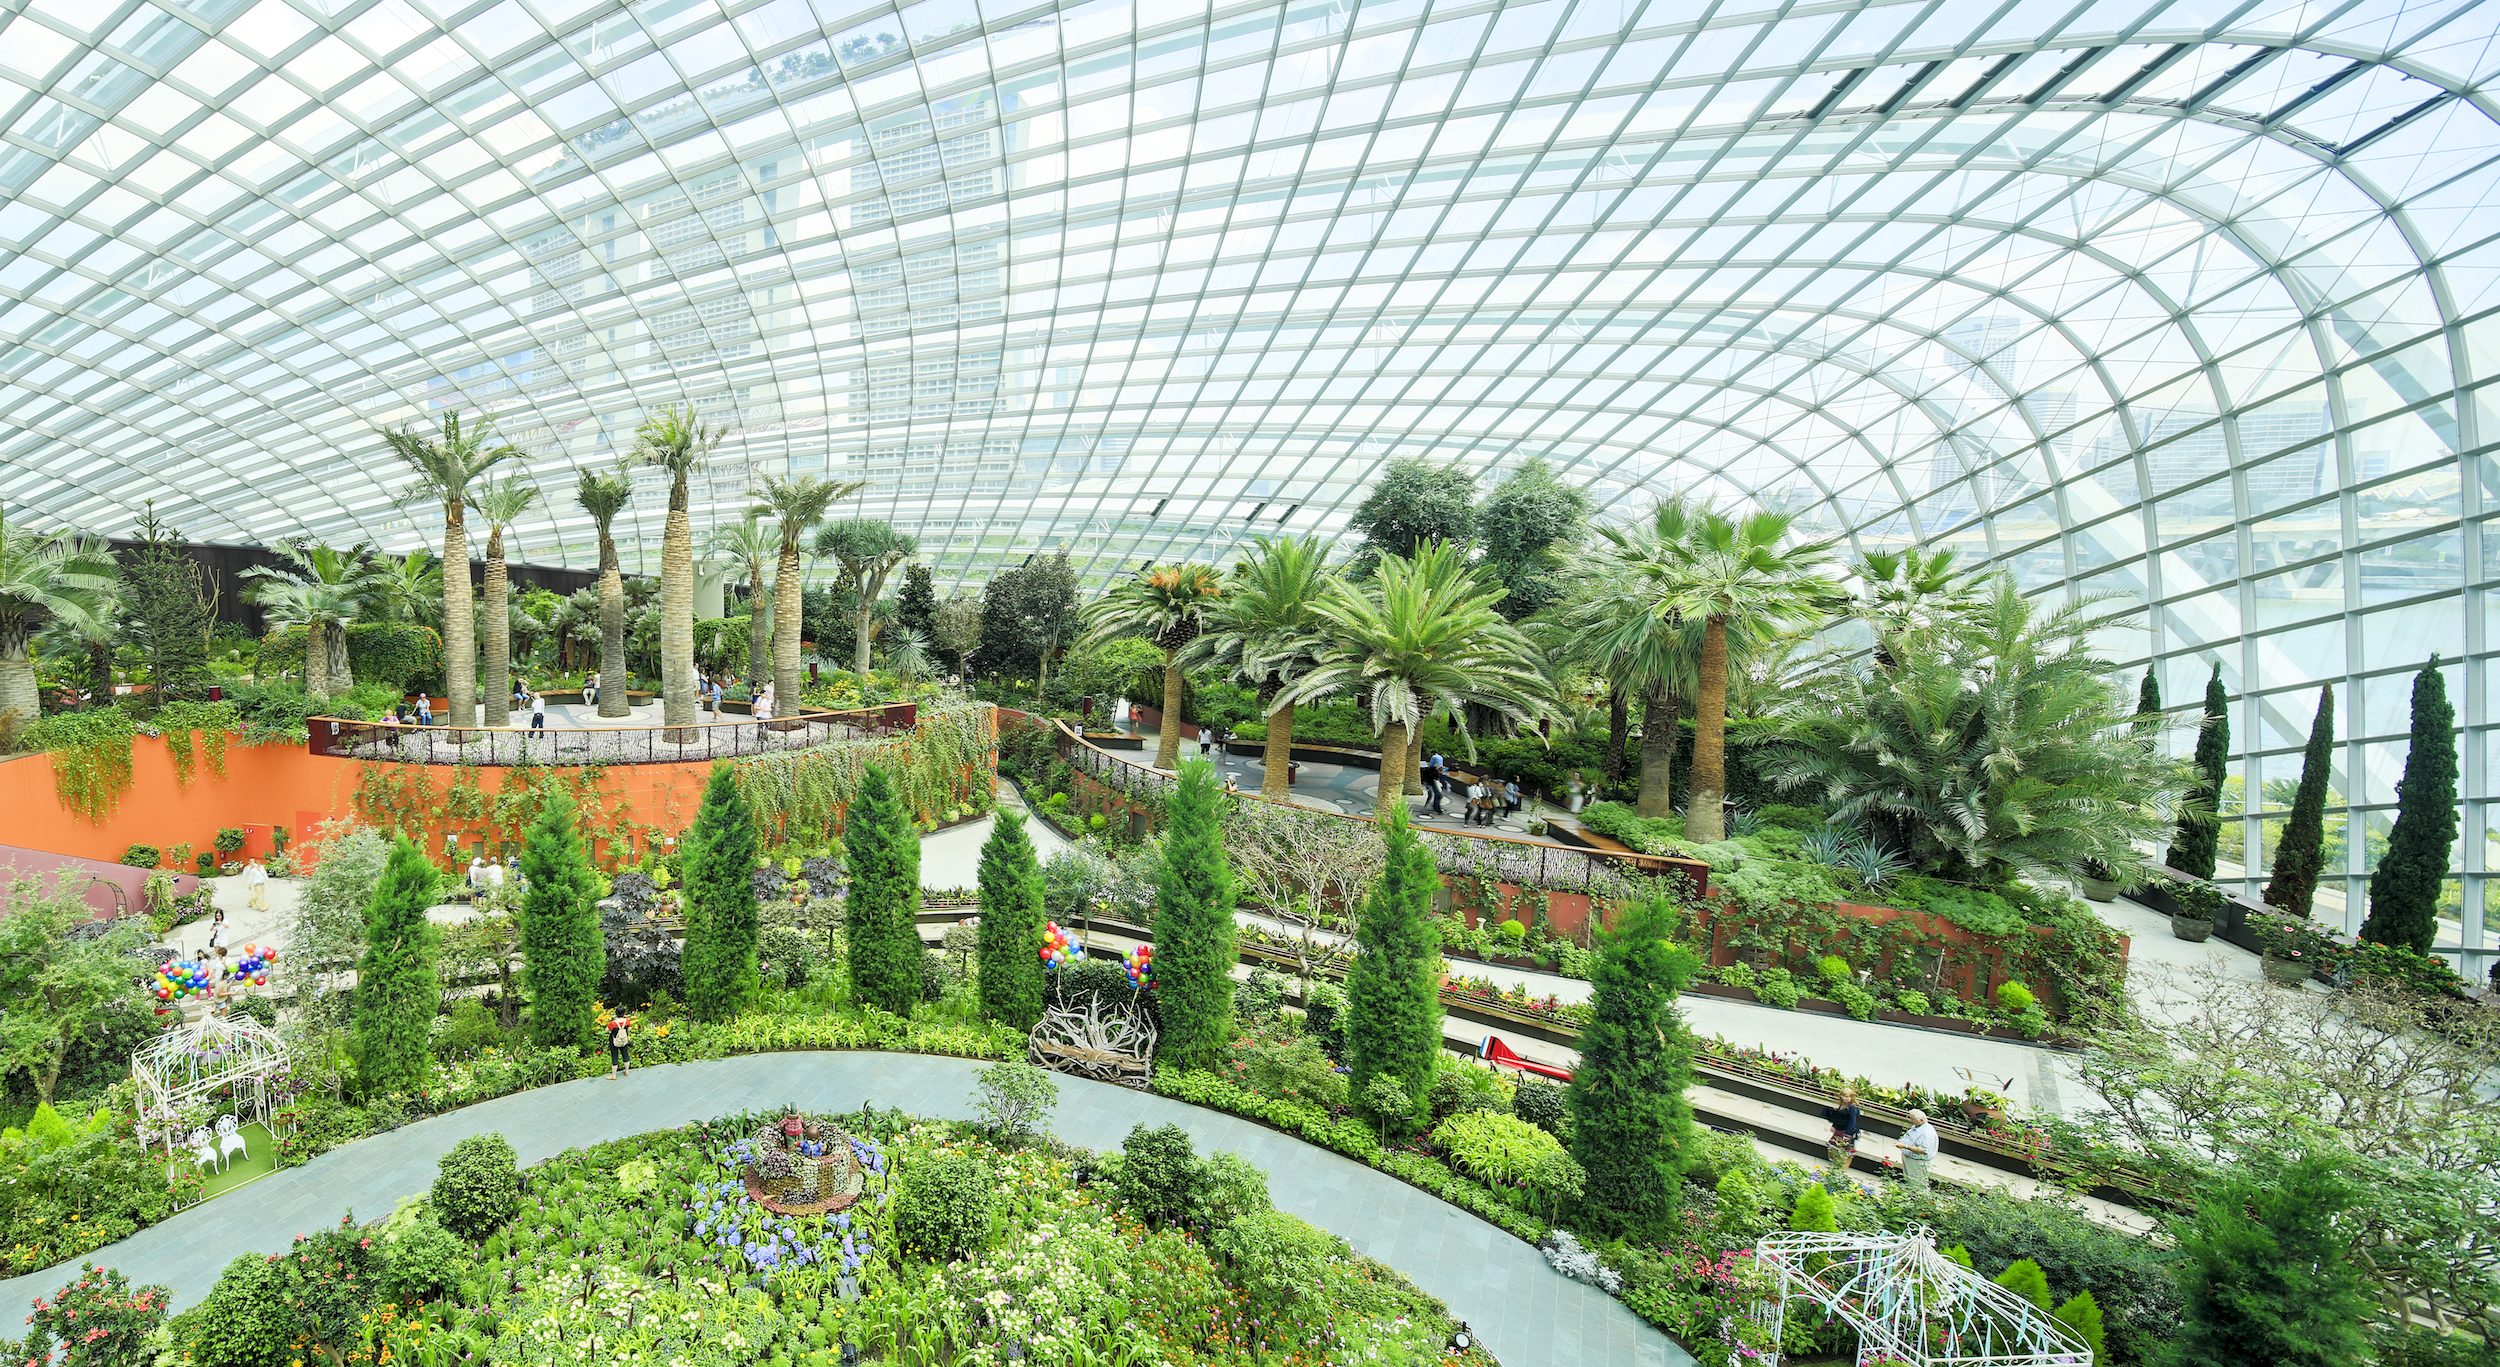 Large greenhouse showing trees, palms and shrubs with a pathway winding through the area